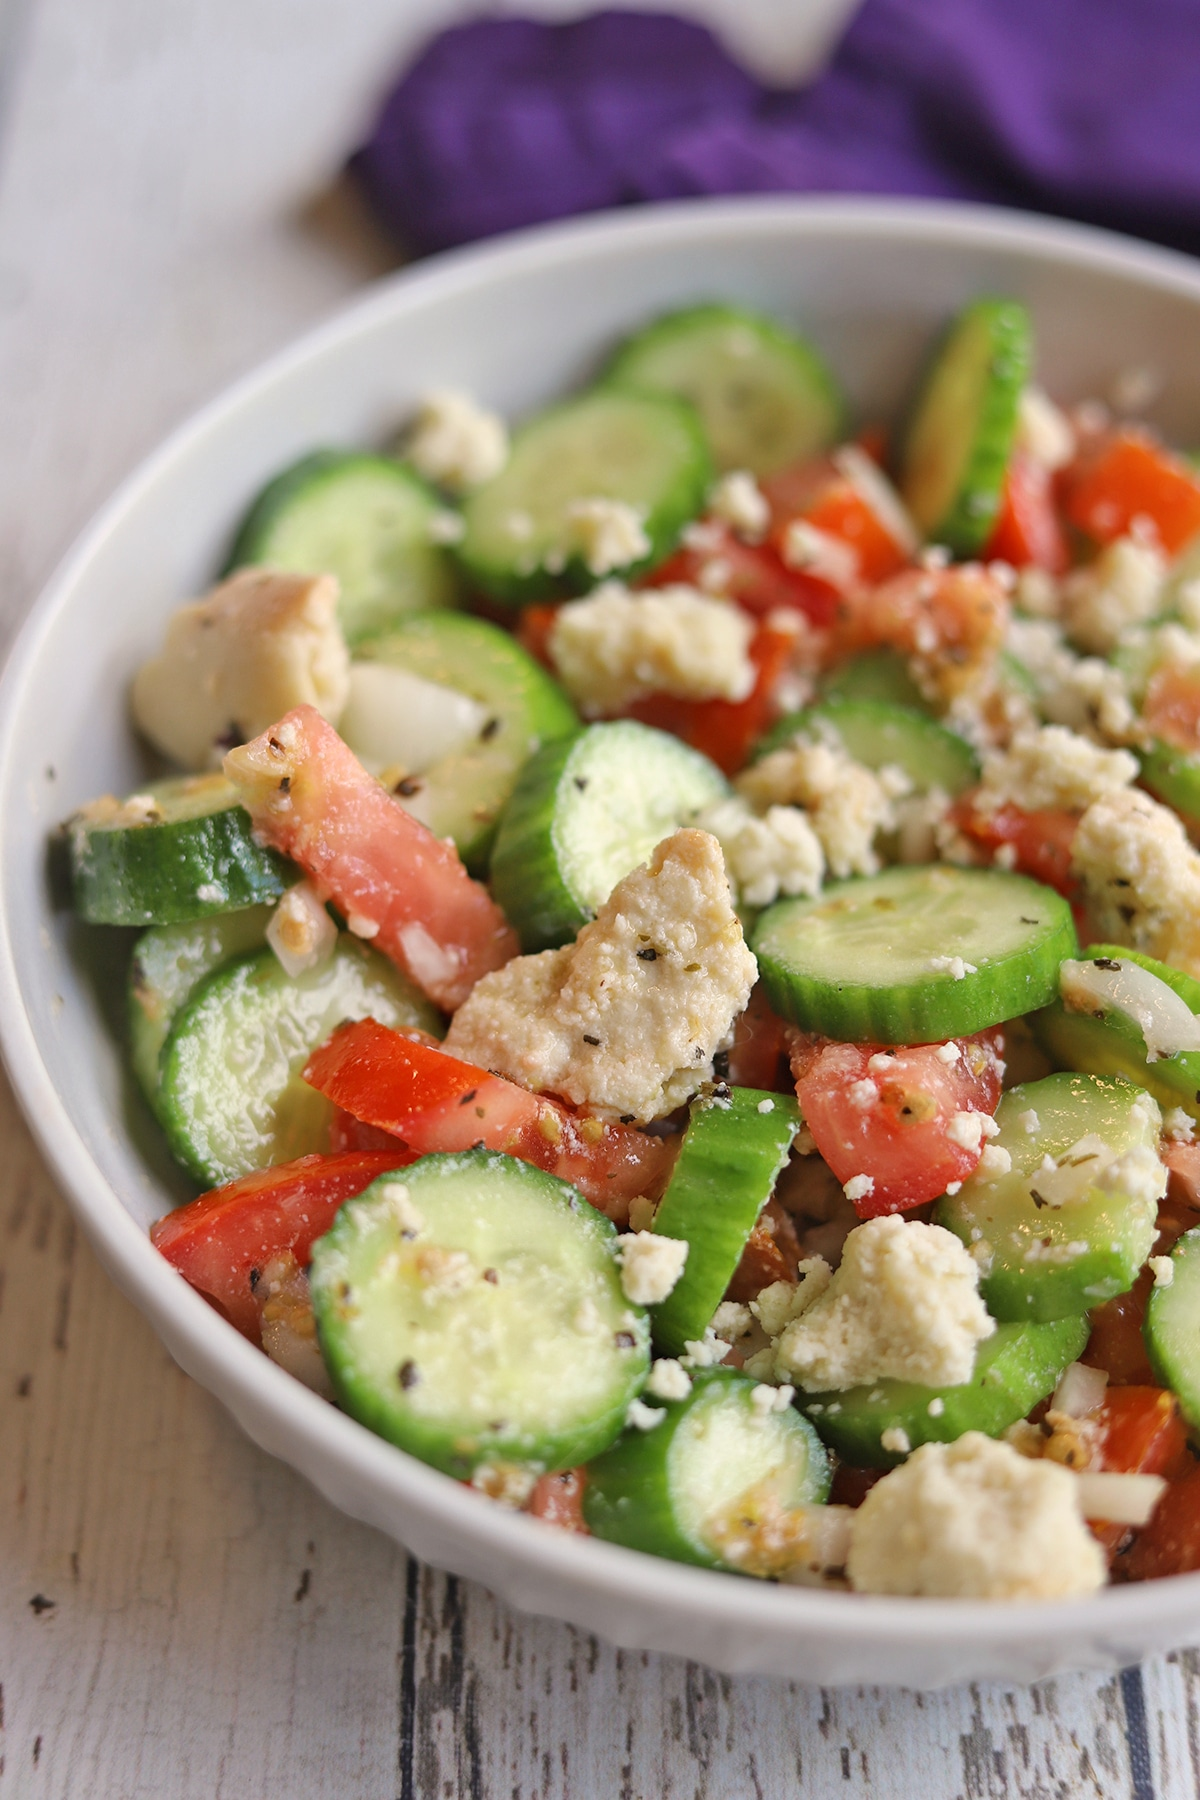 Tomato cucumber salad in bowl with vegan feta crumbles.